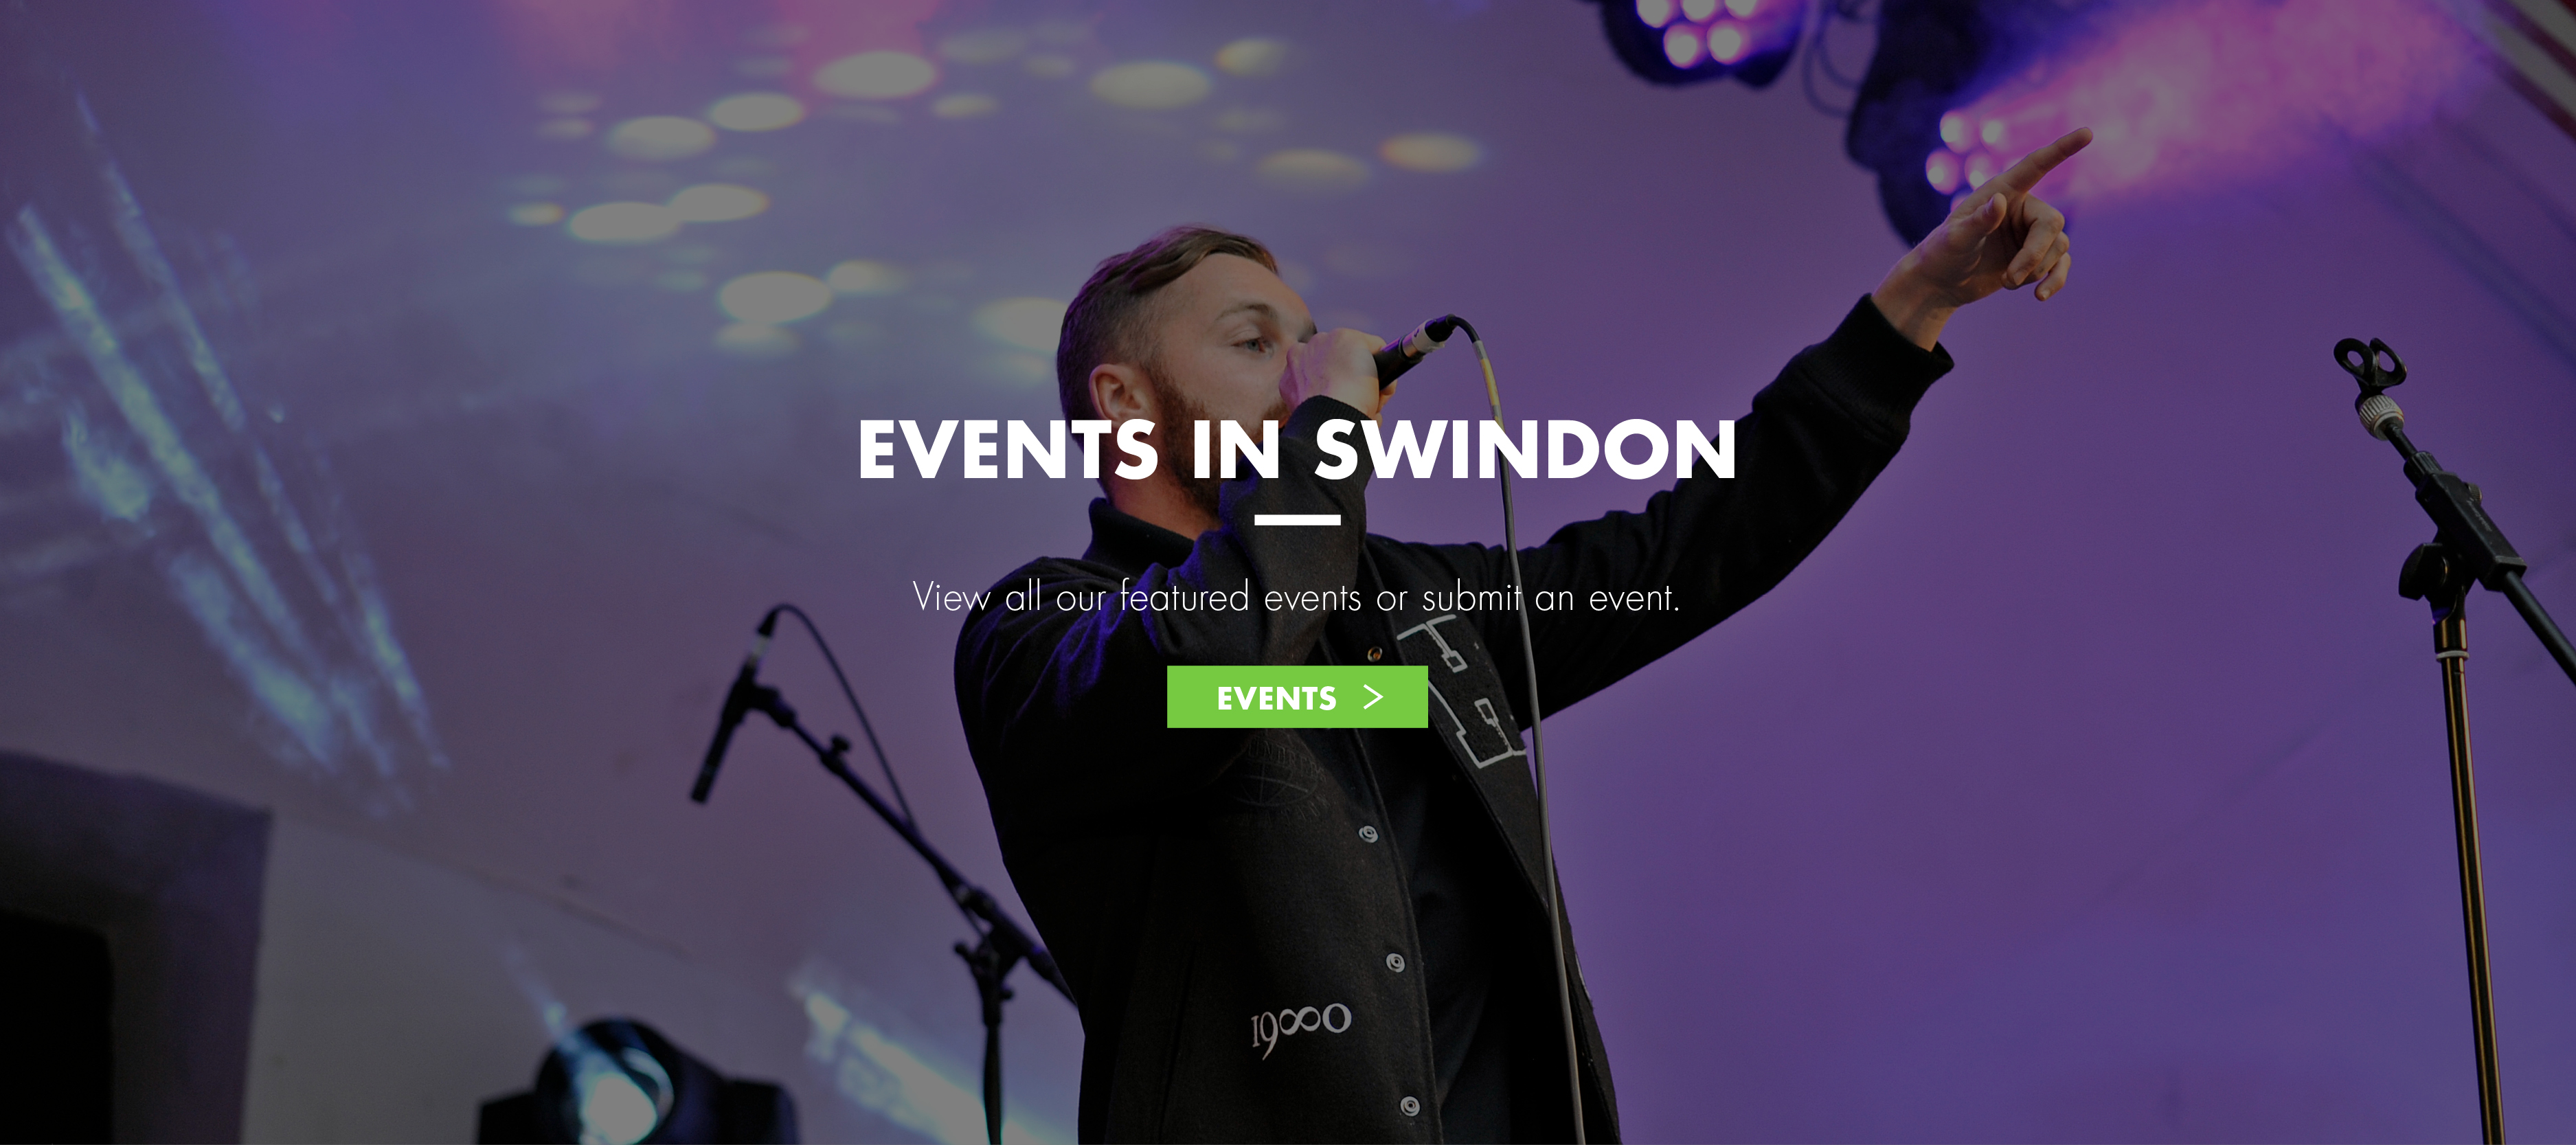 Events In Swindon